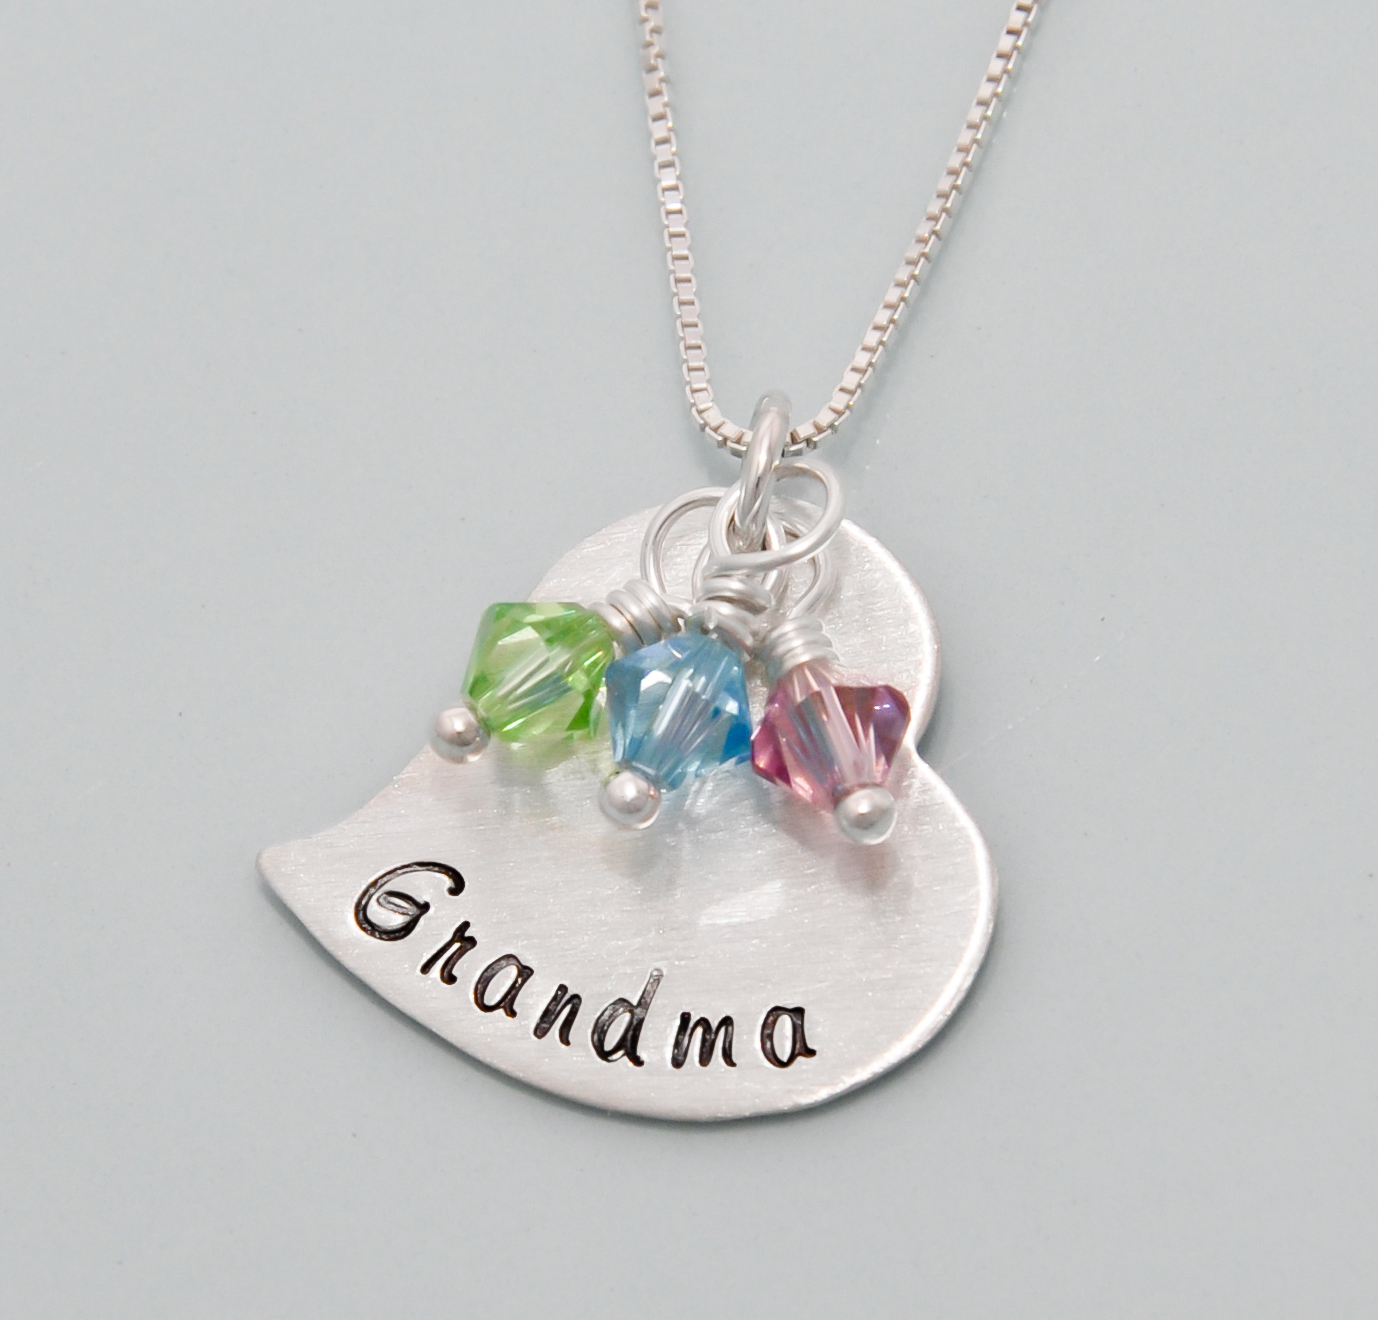 Grandma necklace branded heart jewelry for Grandmother jewelry you can add to